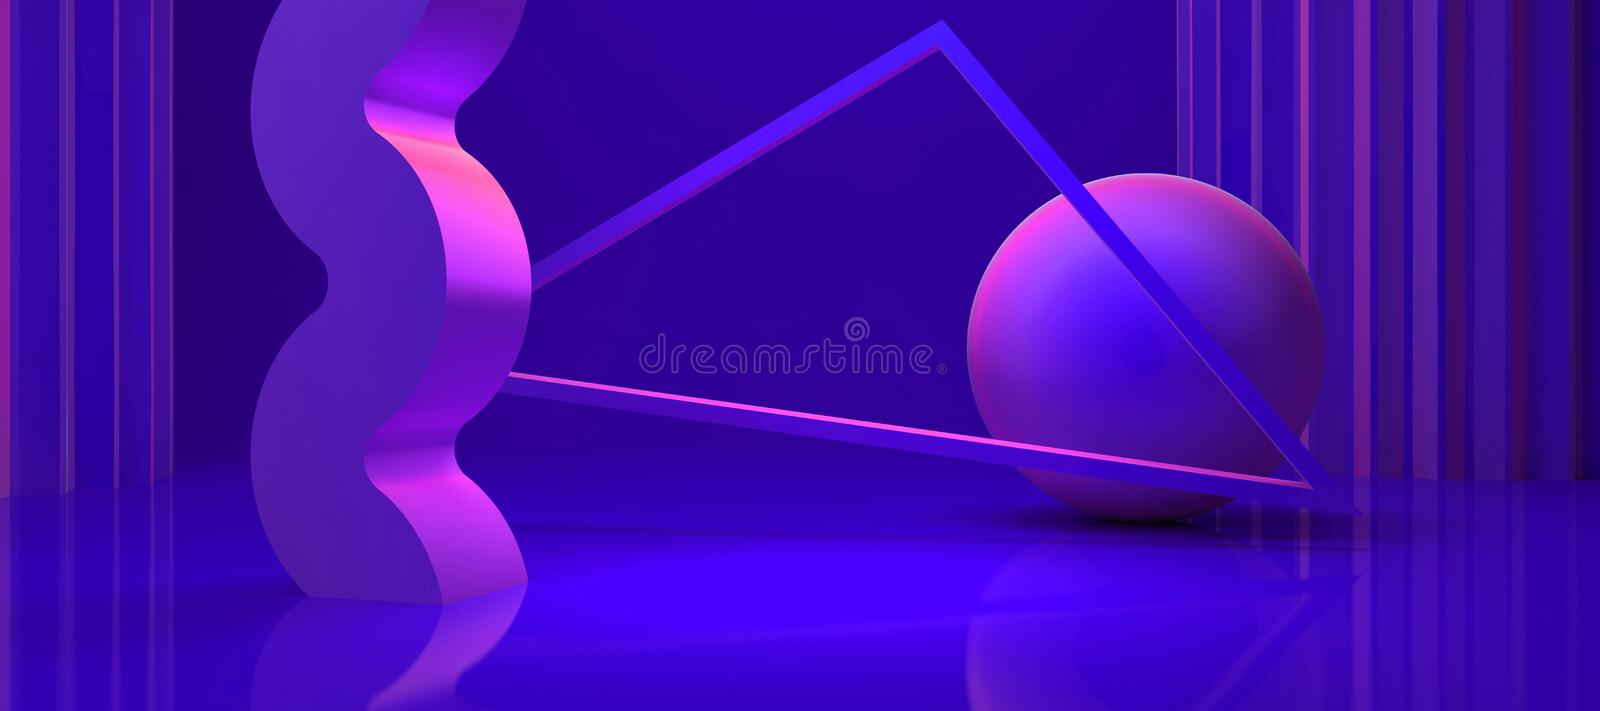 Abstract shapes stock illustration